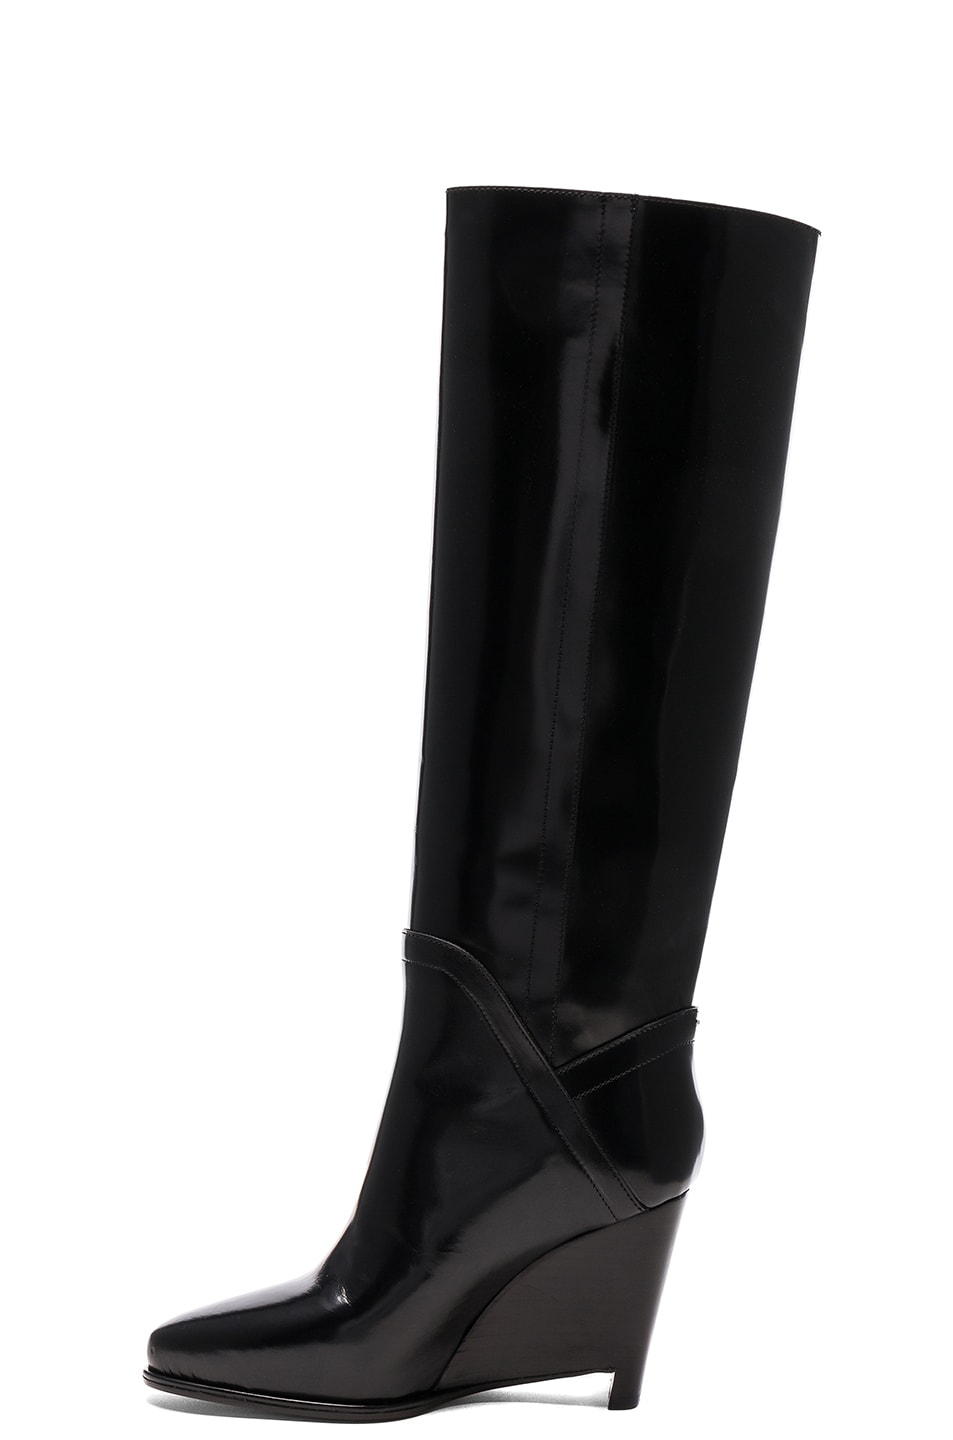 Image 5 of Maison Margiela Leather Boots in Black